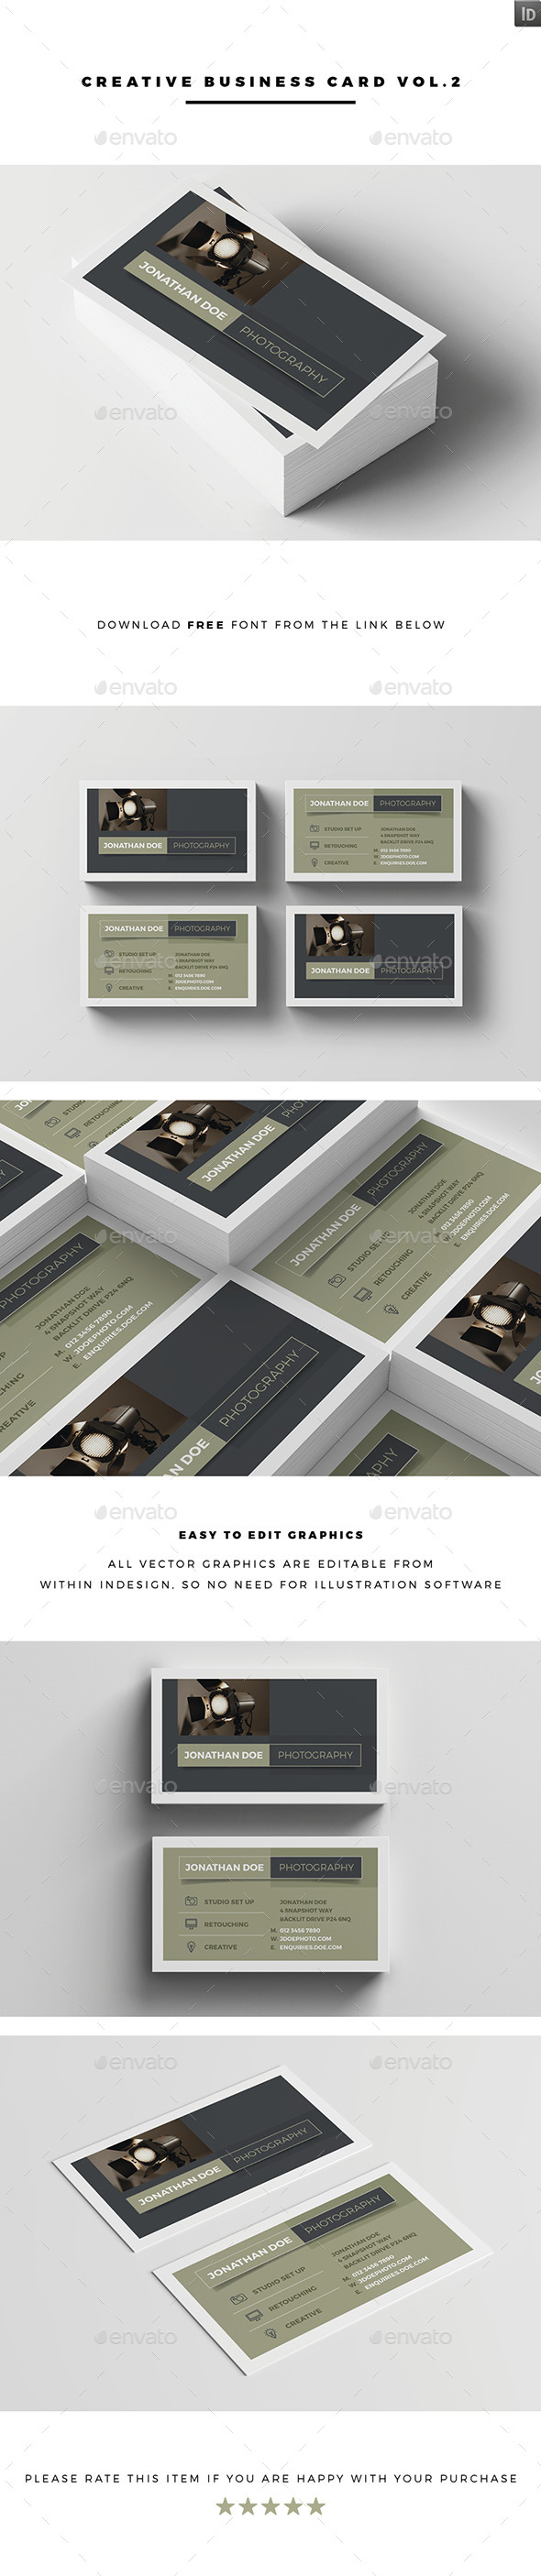 Creative Business Card Vol.3 - Creative Business Cards